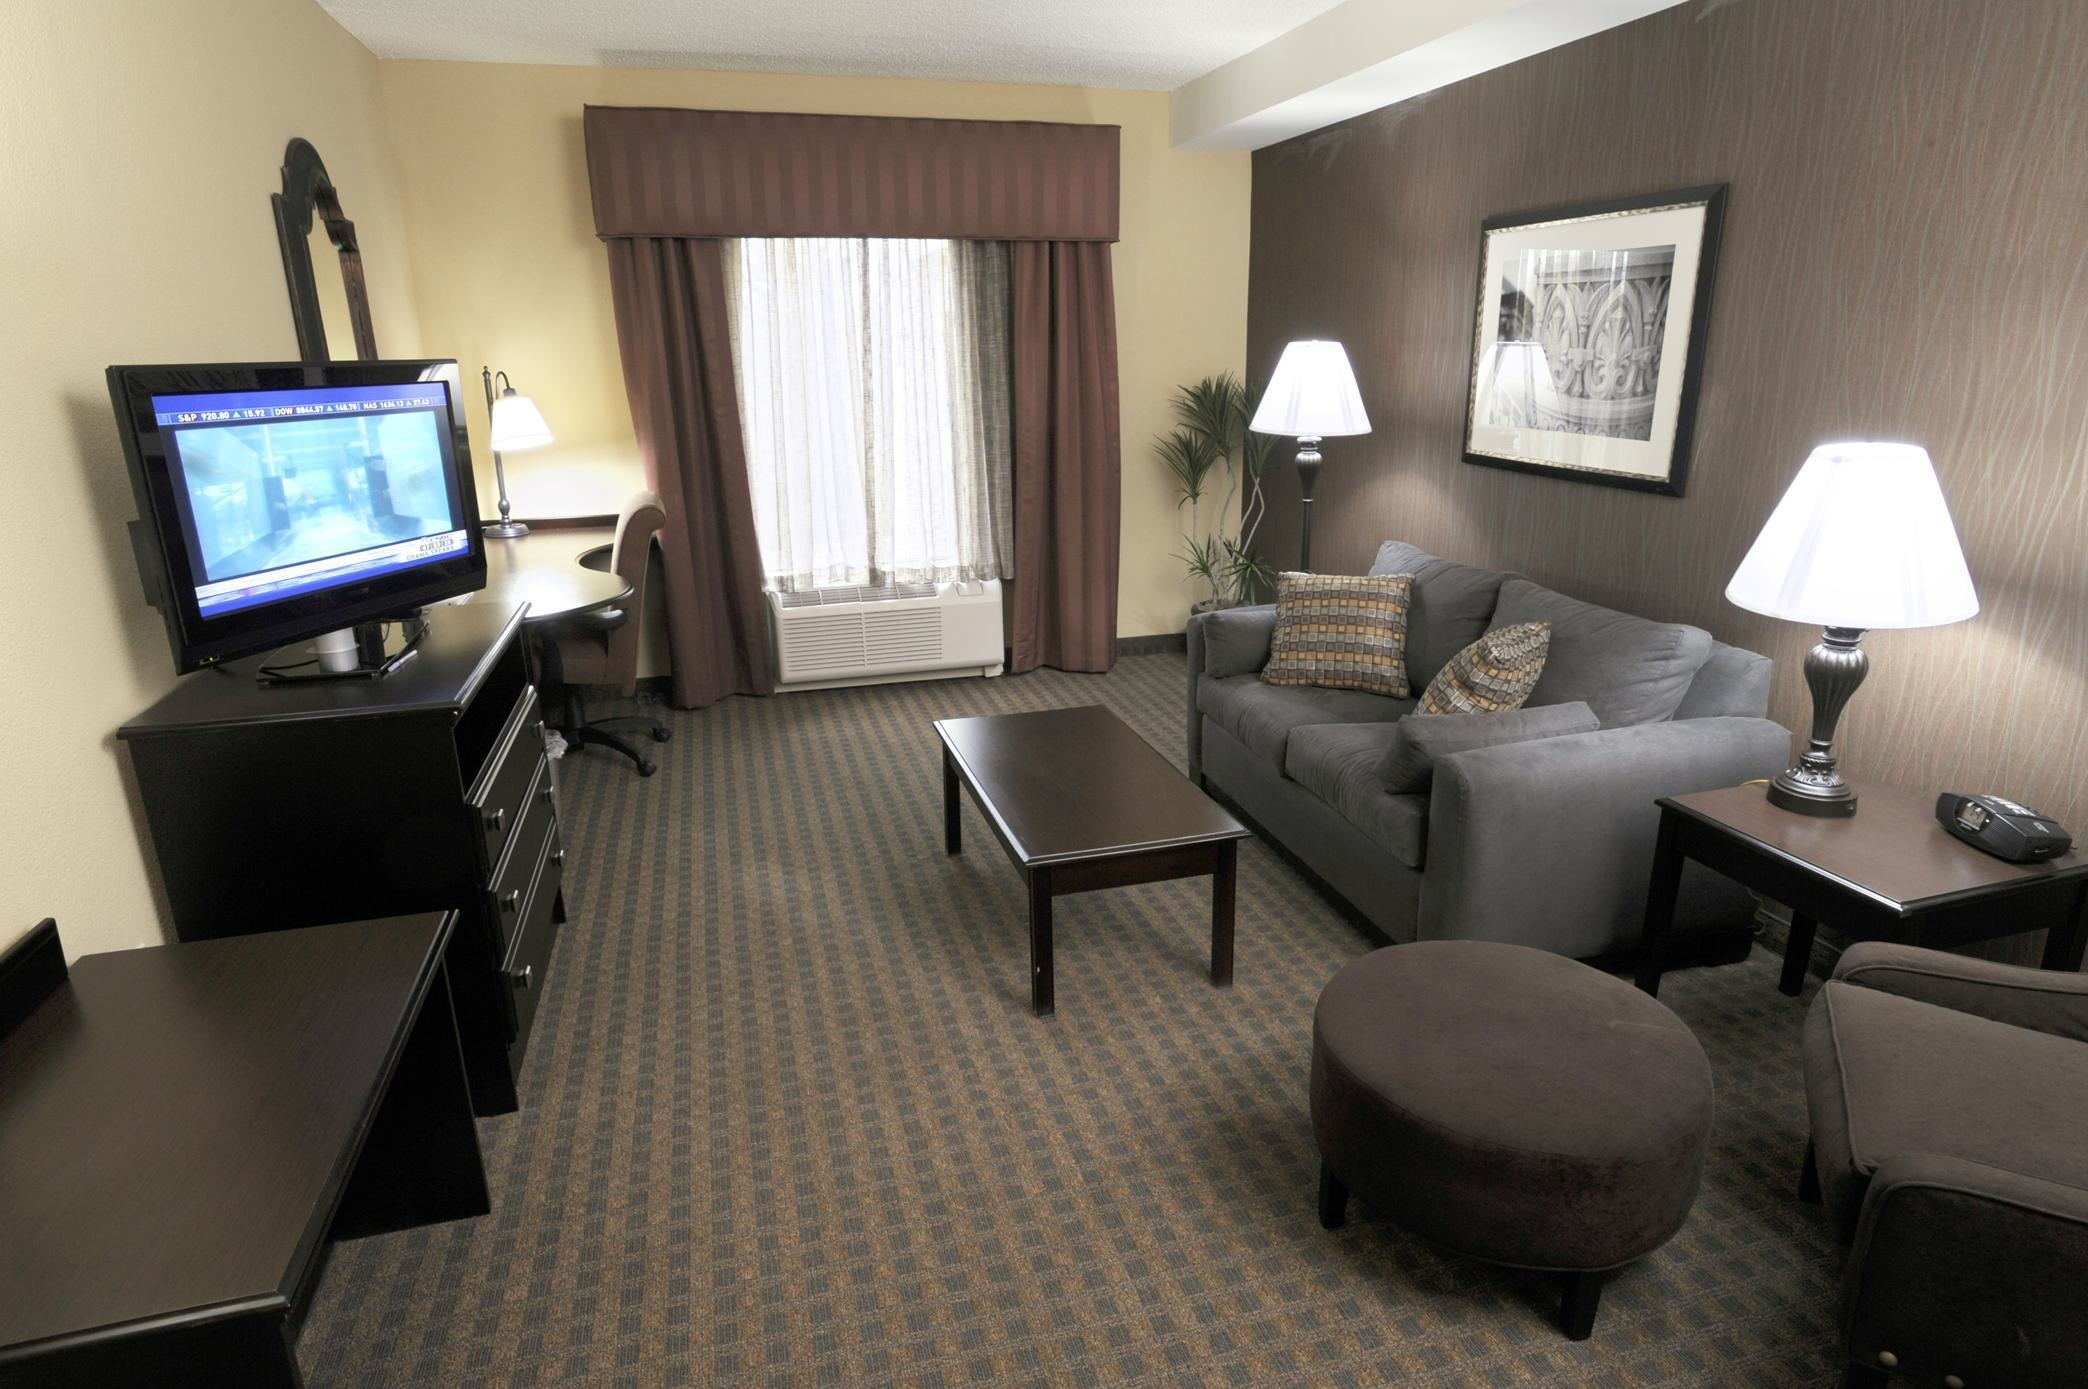 Hampton Inn & Suites Chadds Ford image 18